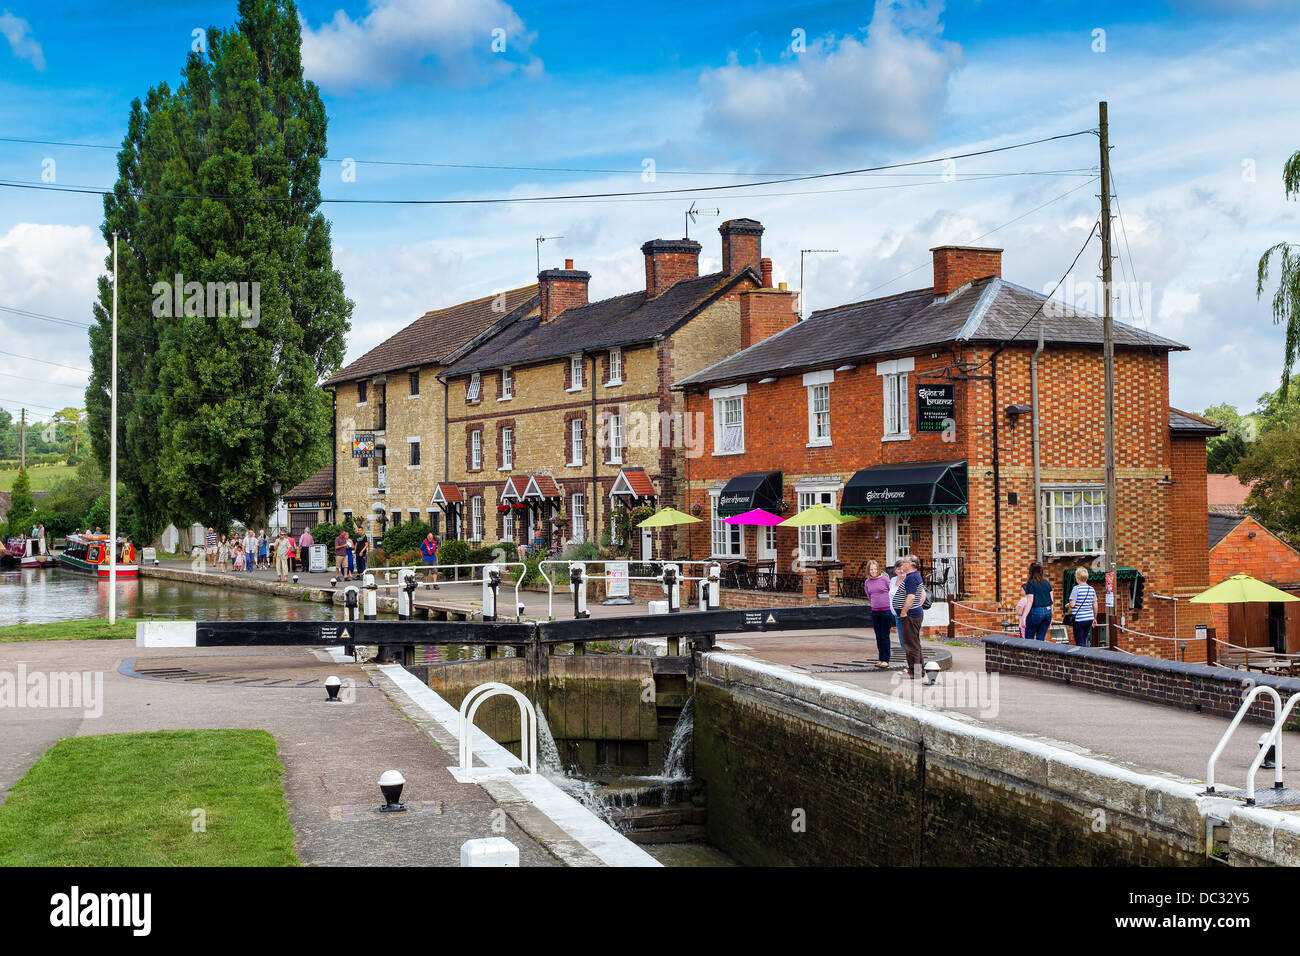 Grand Union Canal at Stoke Bruerne, Northamptonshire. - Stock Image